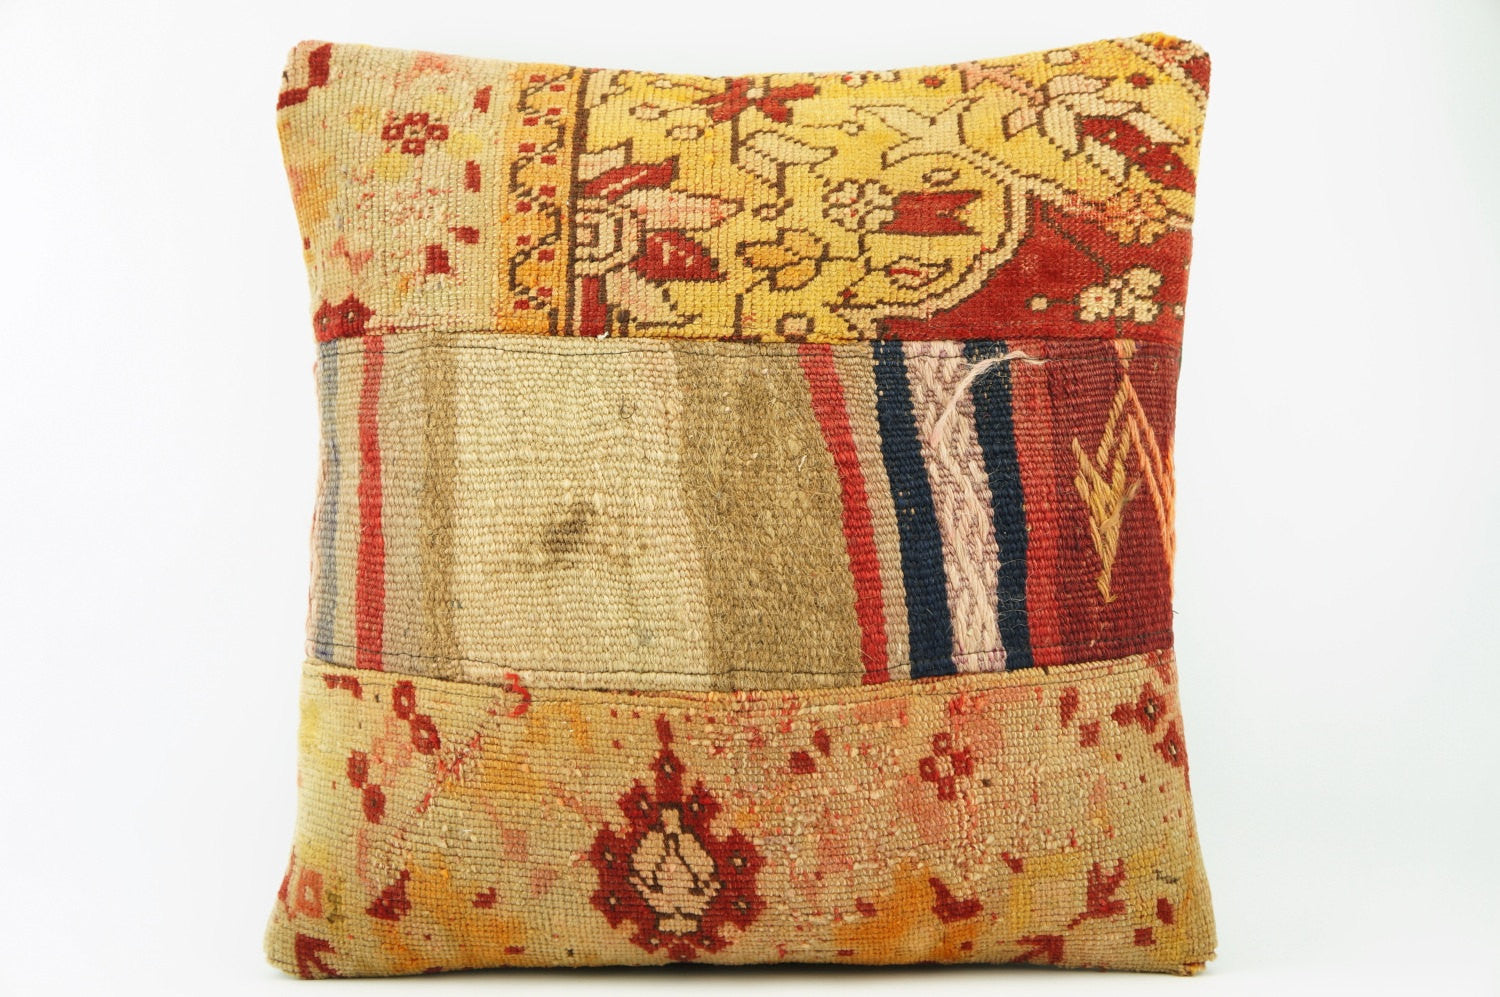 Oriantel  Kilim  pillow cushion 16,  throw  cushion, ethnic decor,  Mediterranean  decor,  2178